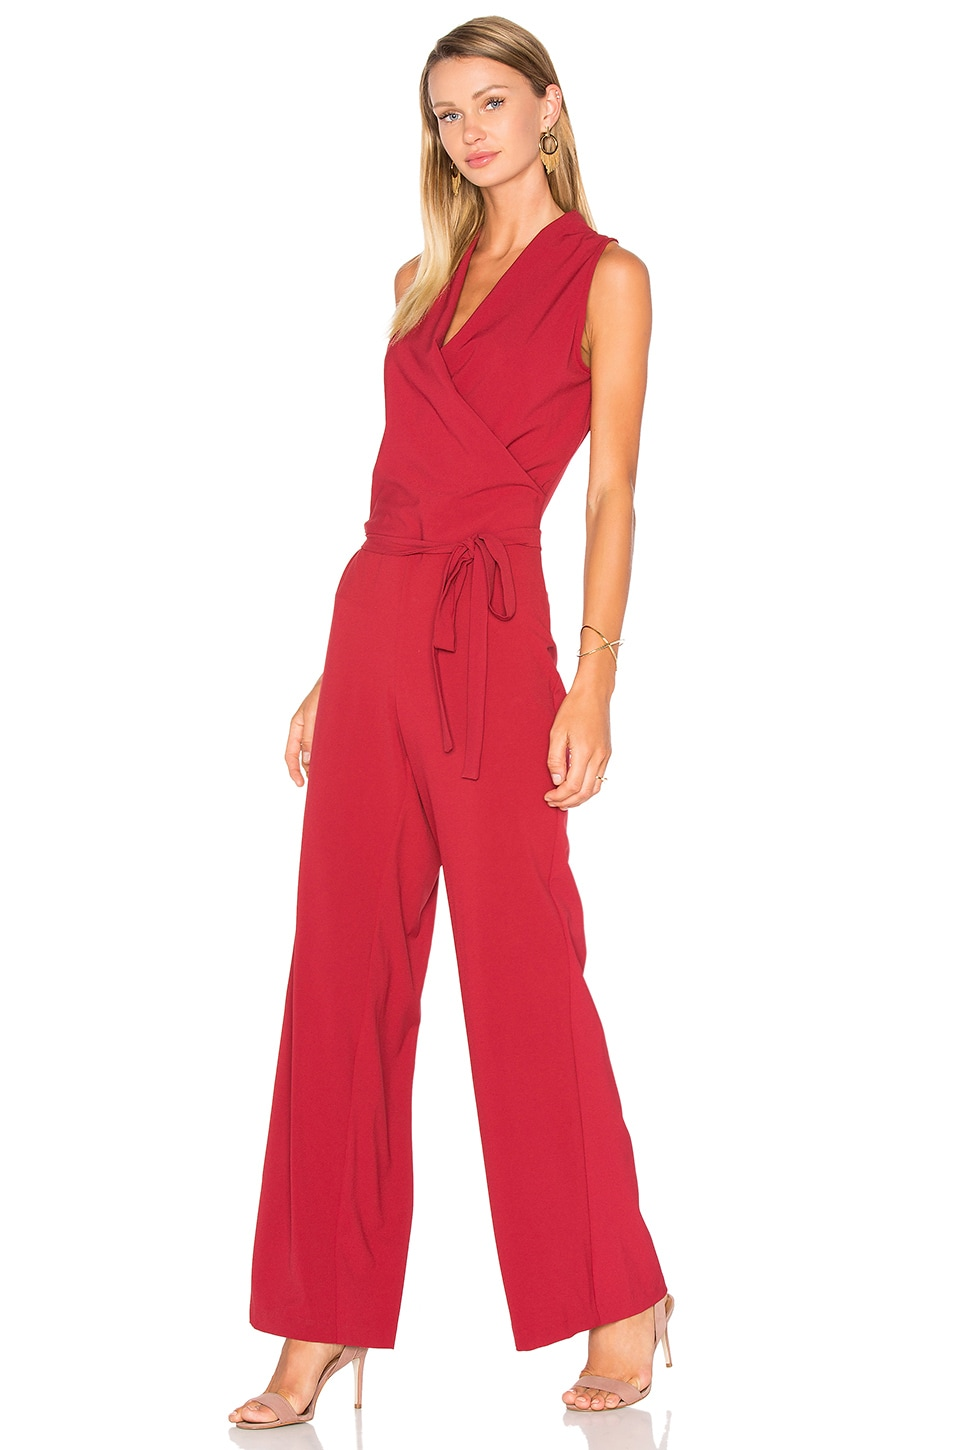 cupcakes and cashmere Margo Jumpsuit in Brick Red